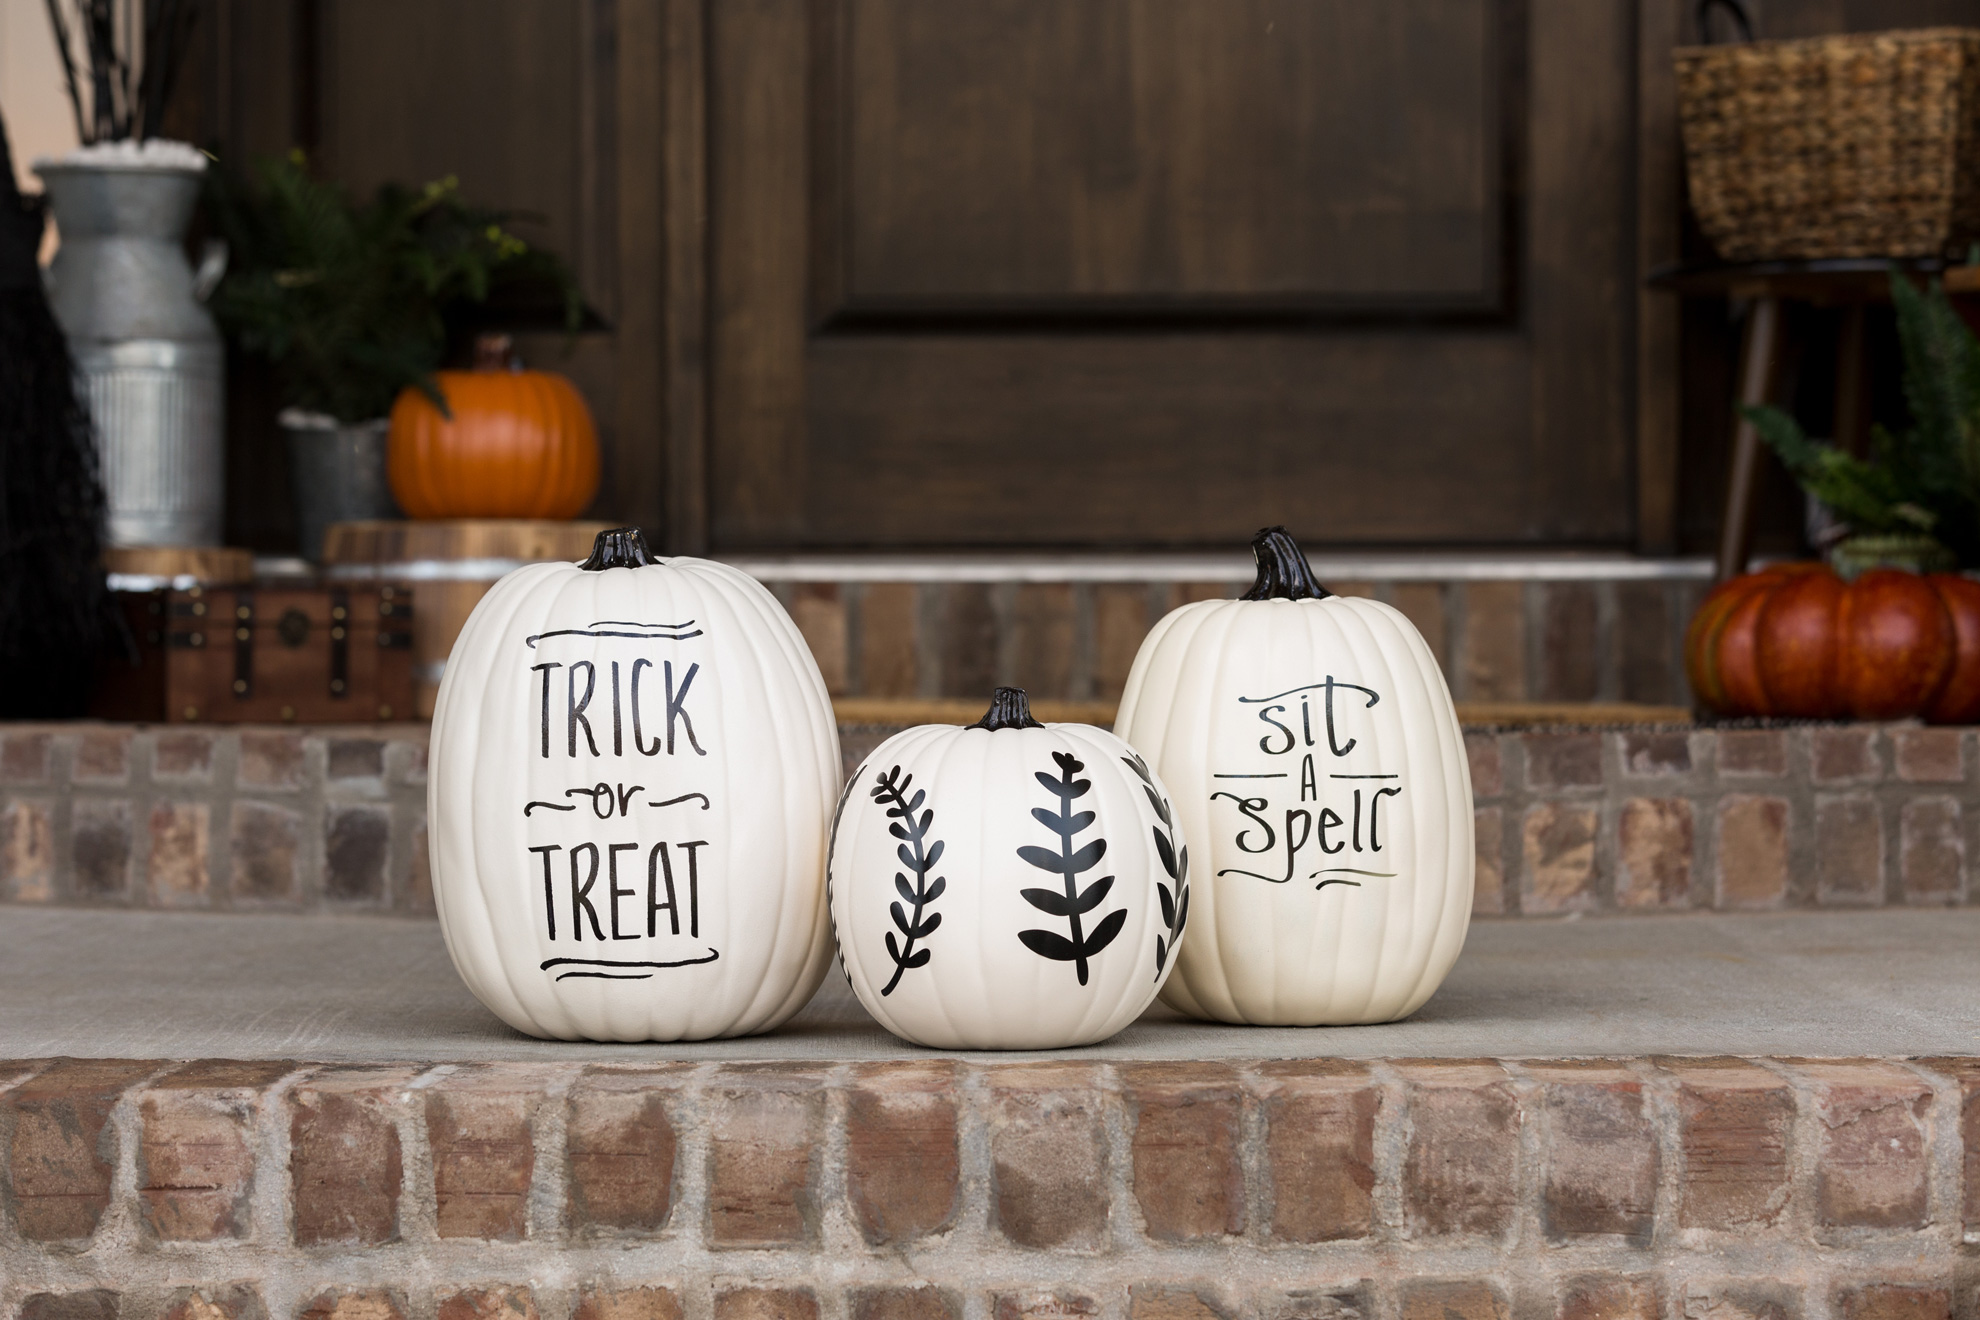 Decorated pumpkins sitting on an outdoor step